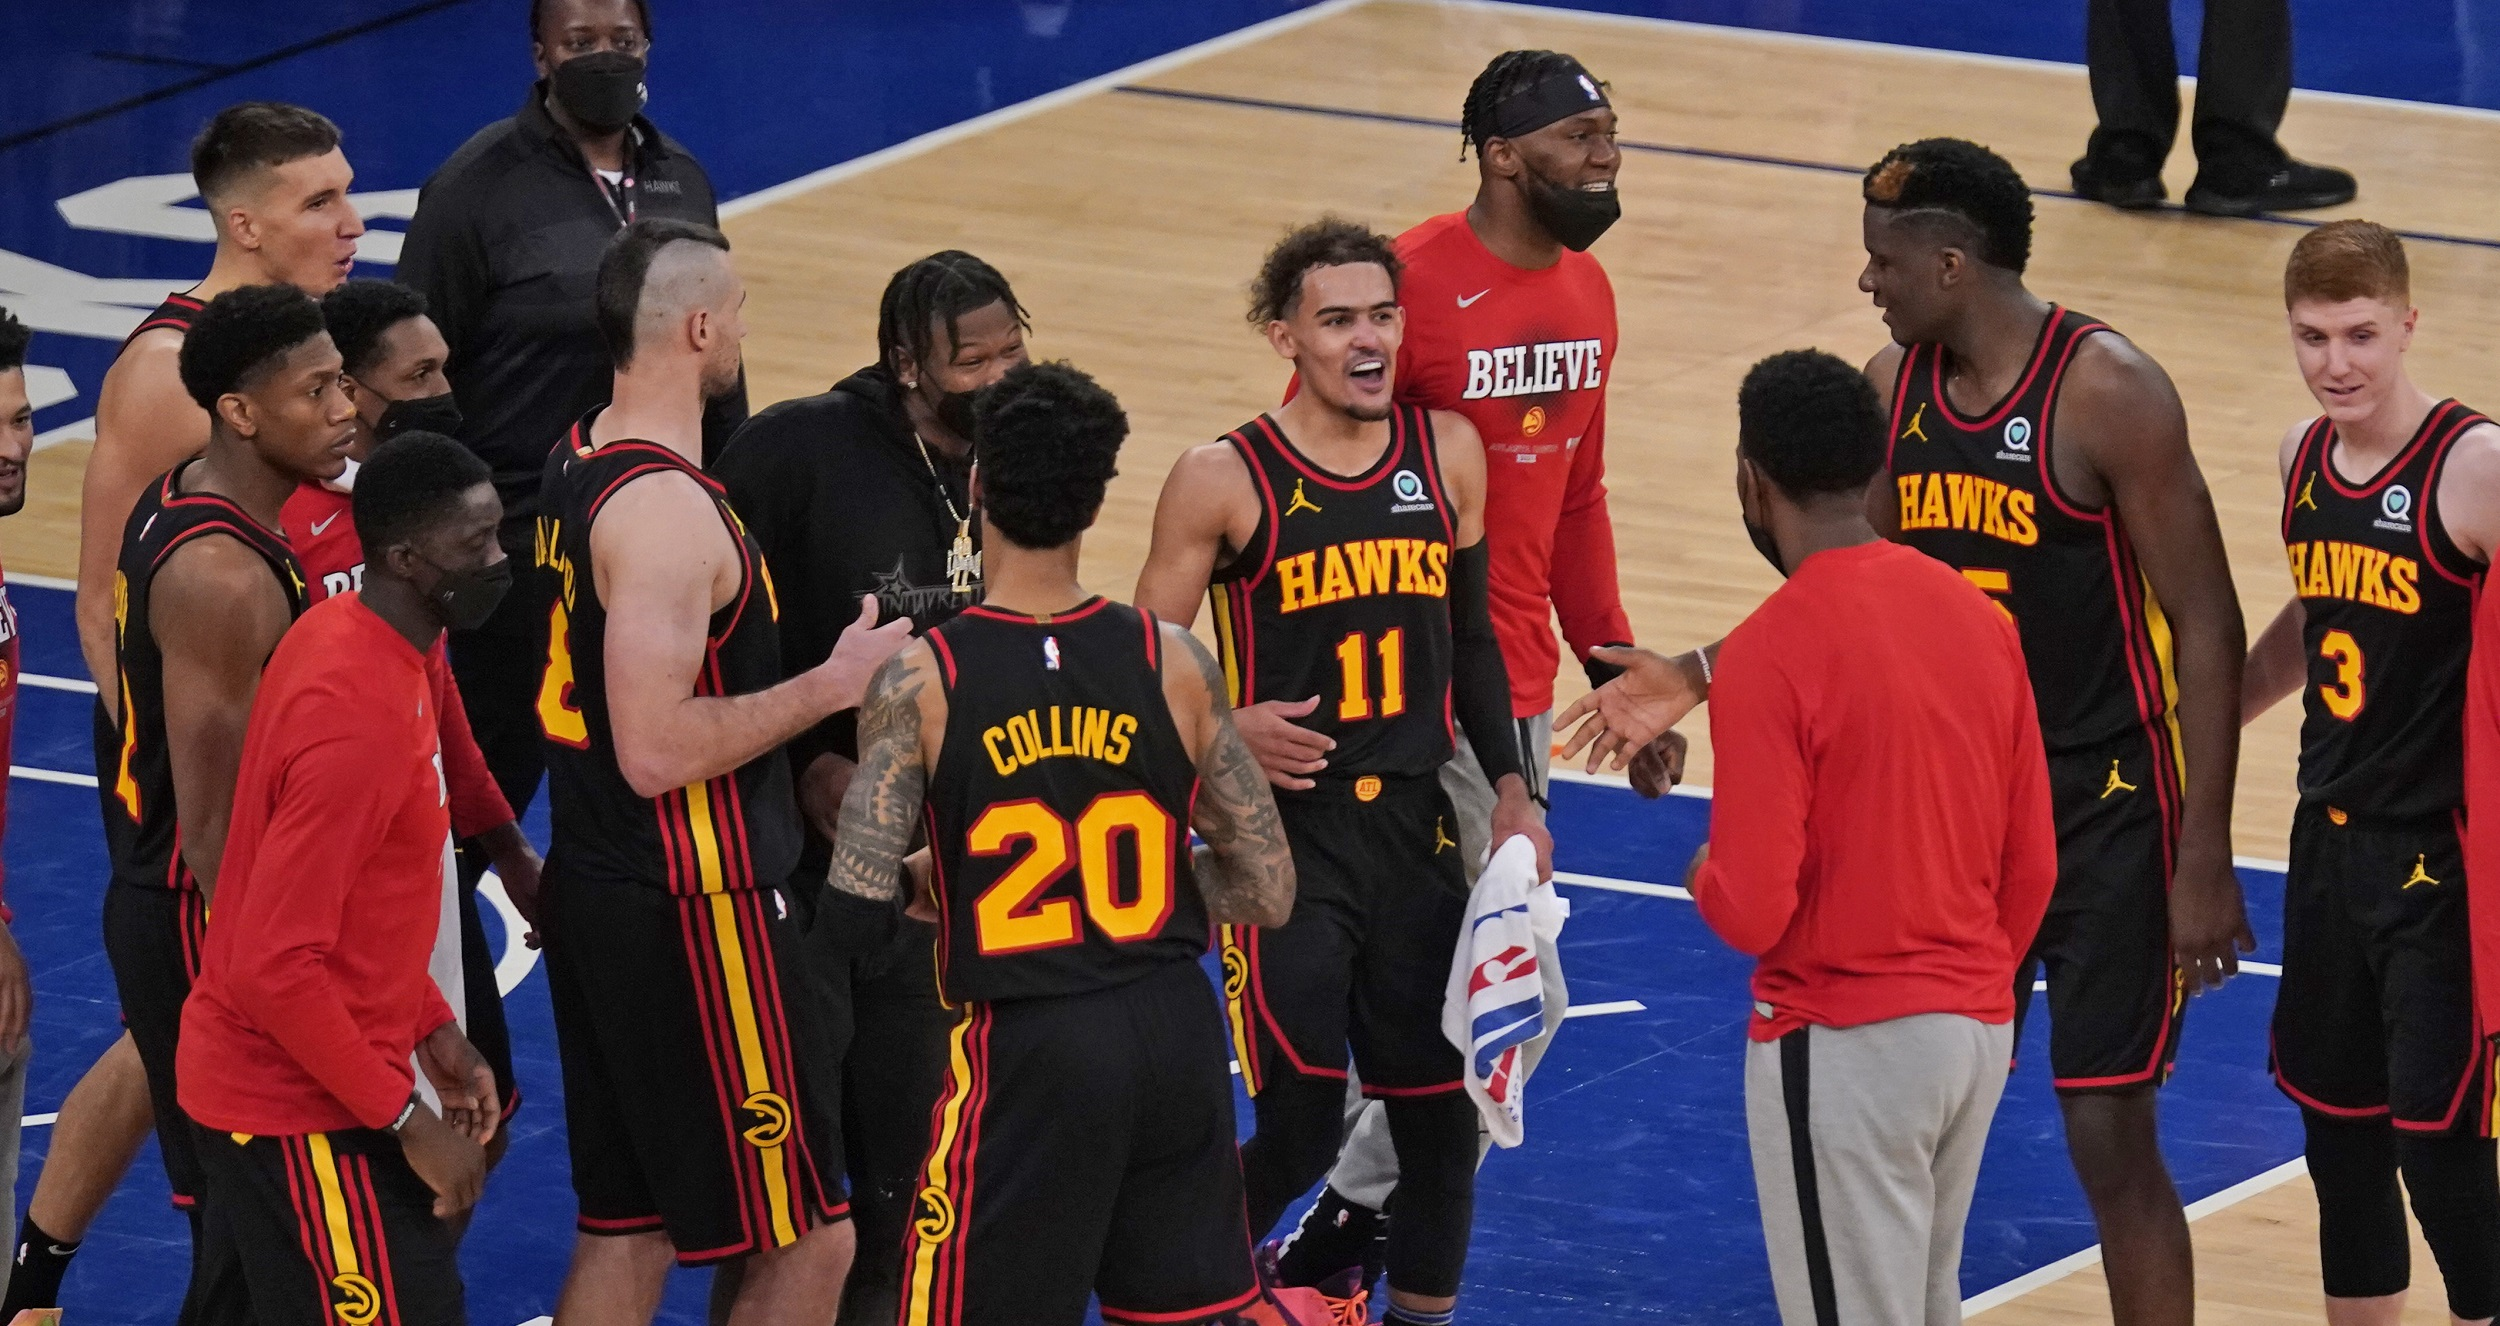 Young lifts Hawks over Knicks in classic battle